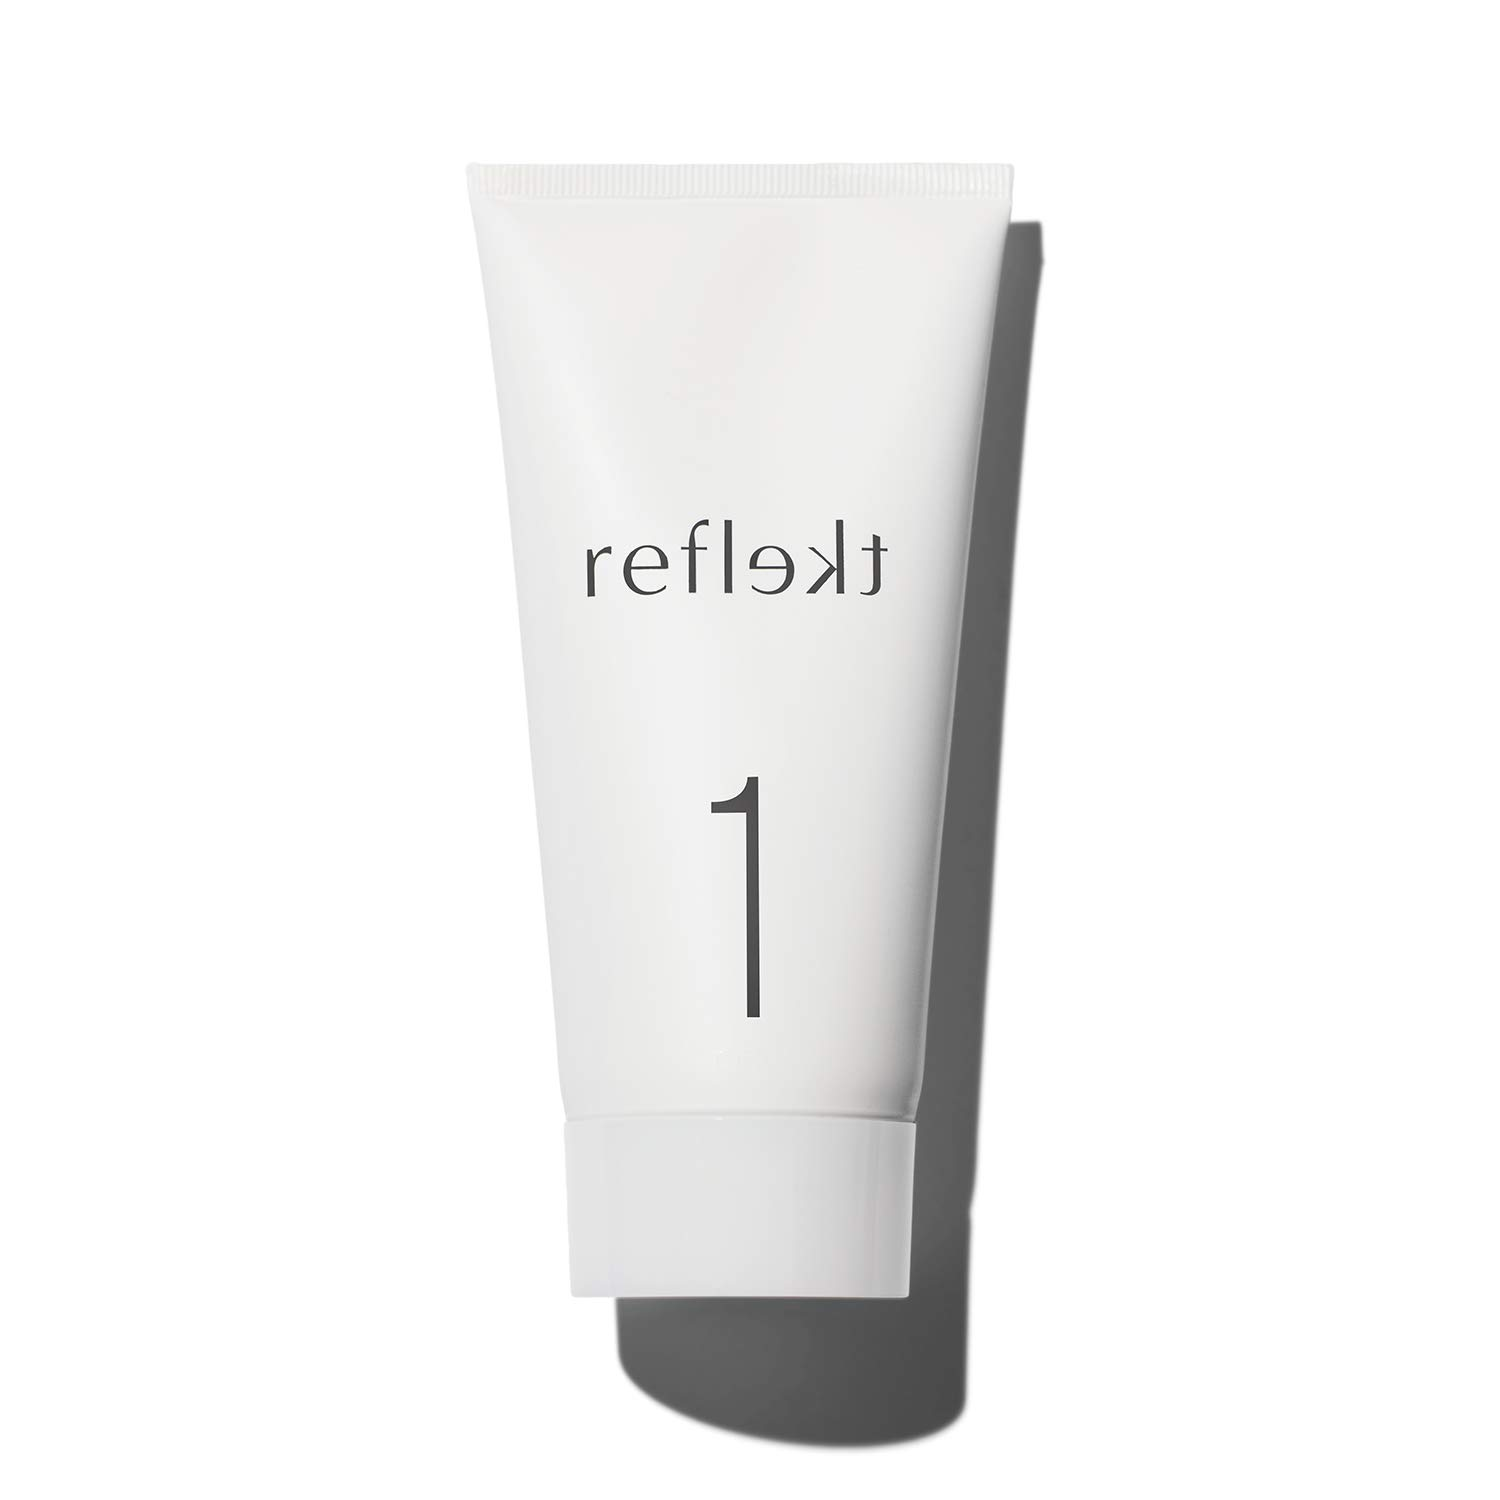 REFLEKT 1 Best Exfoliating Face Wash Gentle Hydrating Daily Face Scrub, Facial Pore Cleanser, Collagen Hyaluronic Acid. Best Face Scrub Sensitive Skin, Dry, Oily, Acne, Anti-Aging Natural Beads 150ml